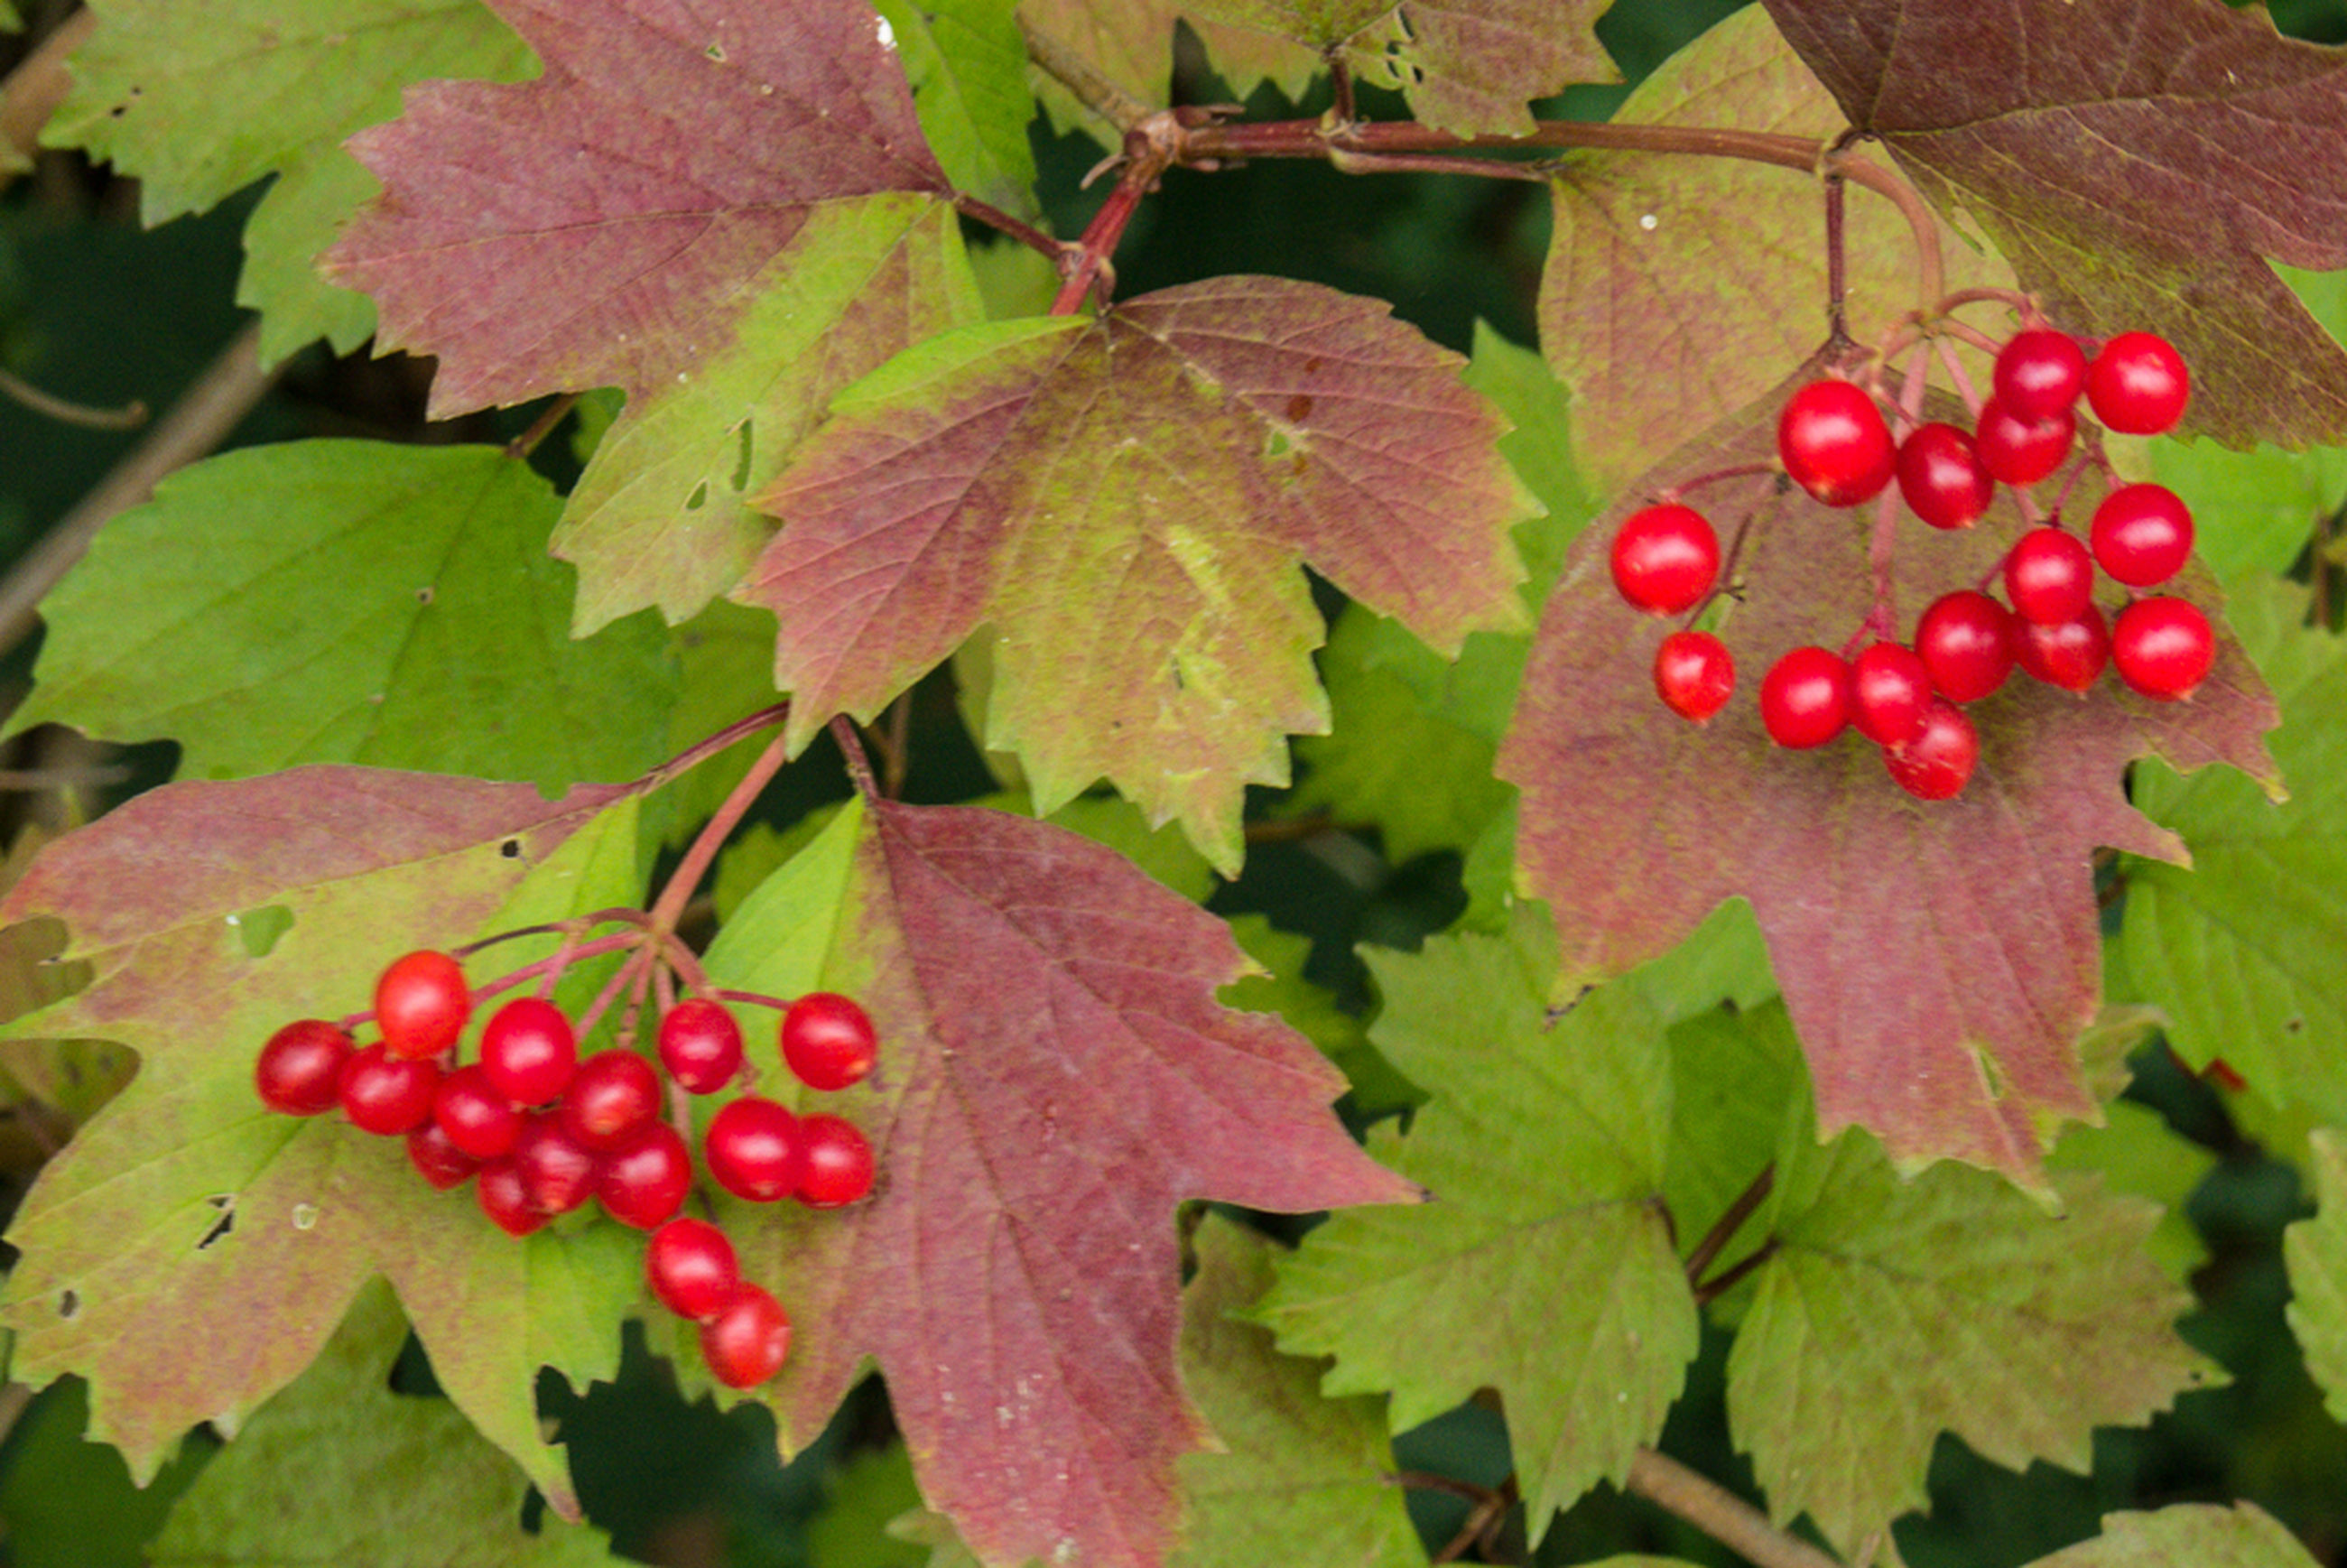 red, leaf, fruit, food and drink, food, healthy eating, freshness, growth, close-up, green color, berry fruit, ripe, nature, strawberry, berry, tree, plant, no people, branch, day